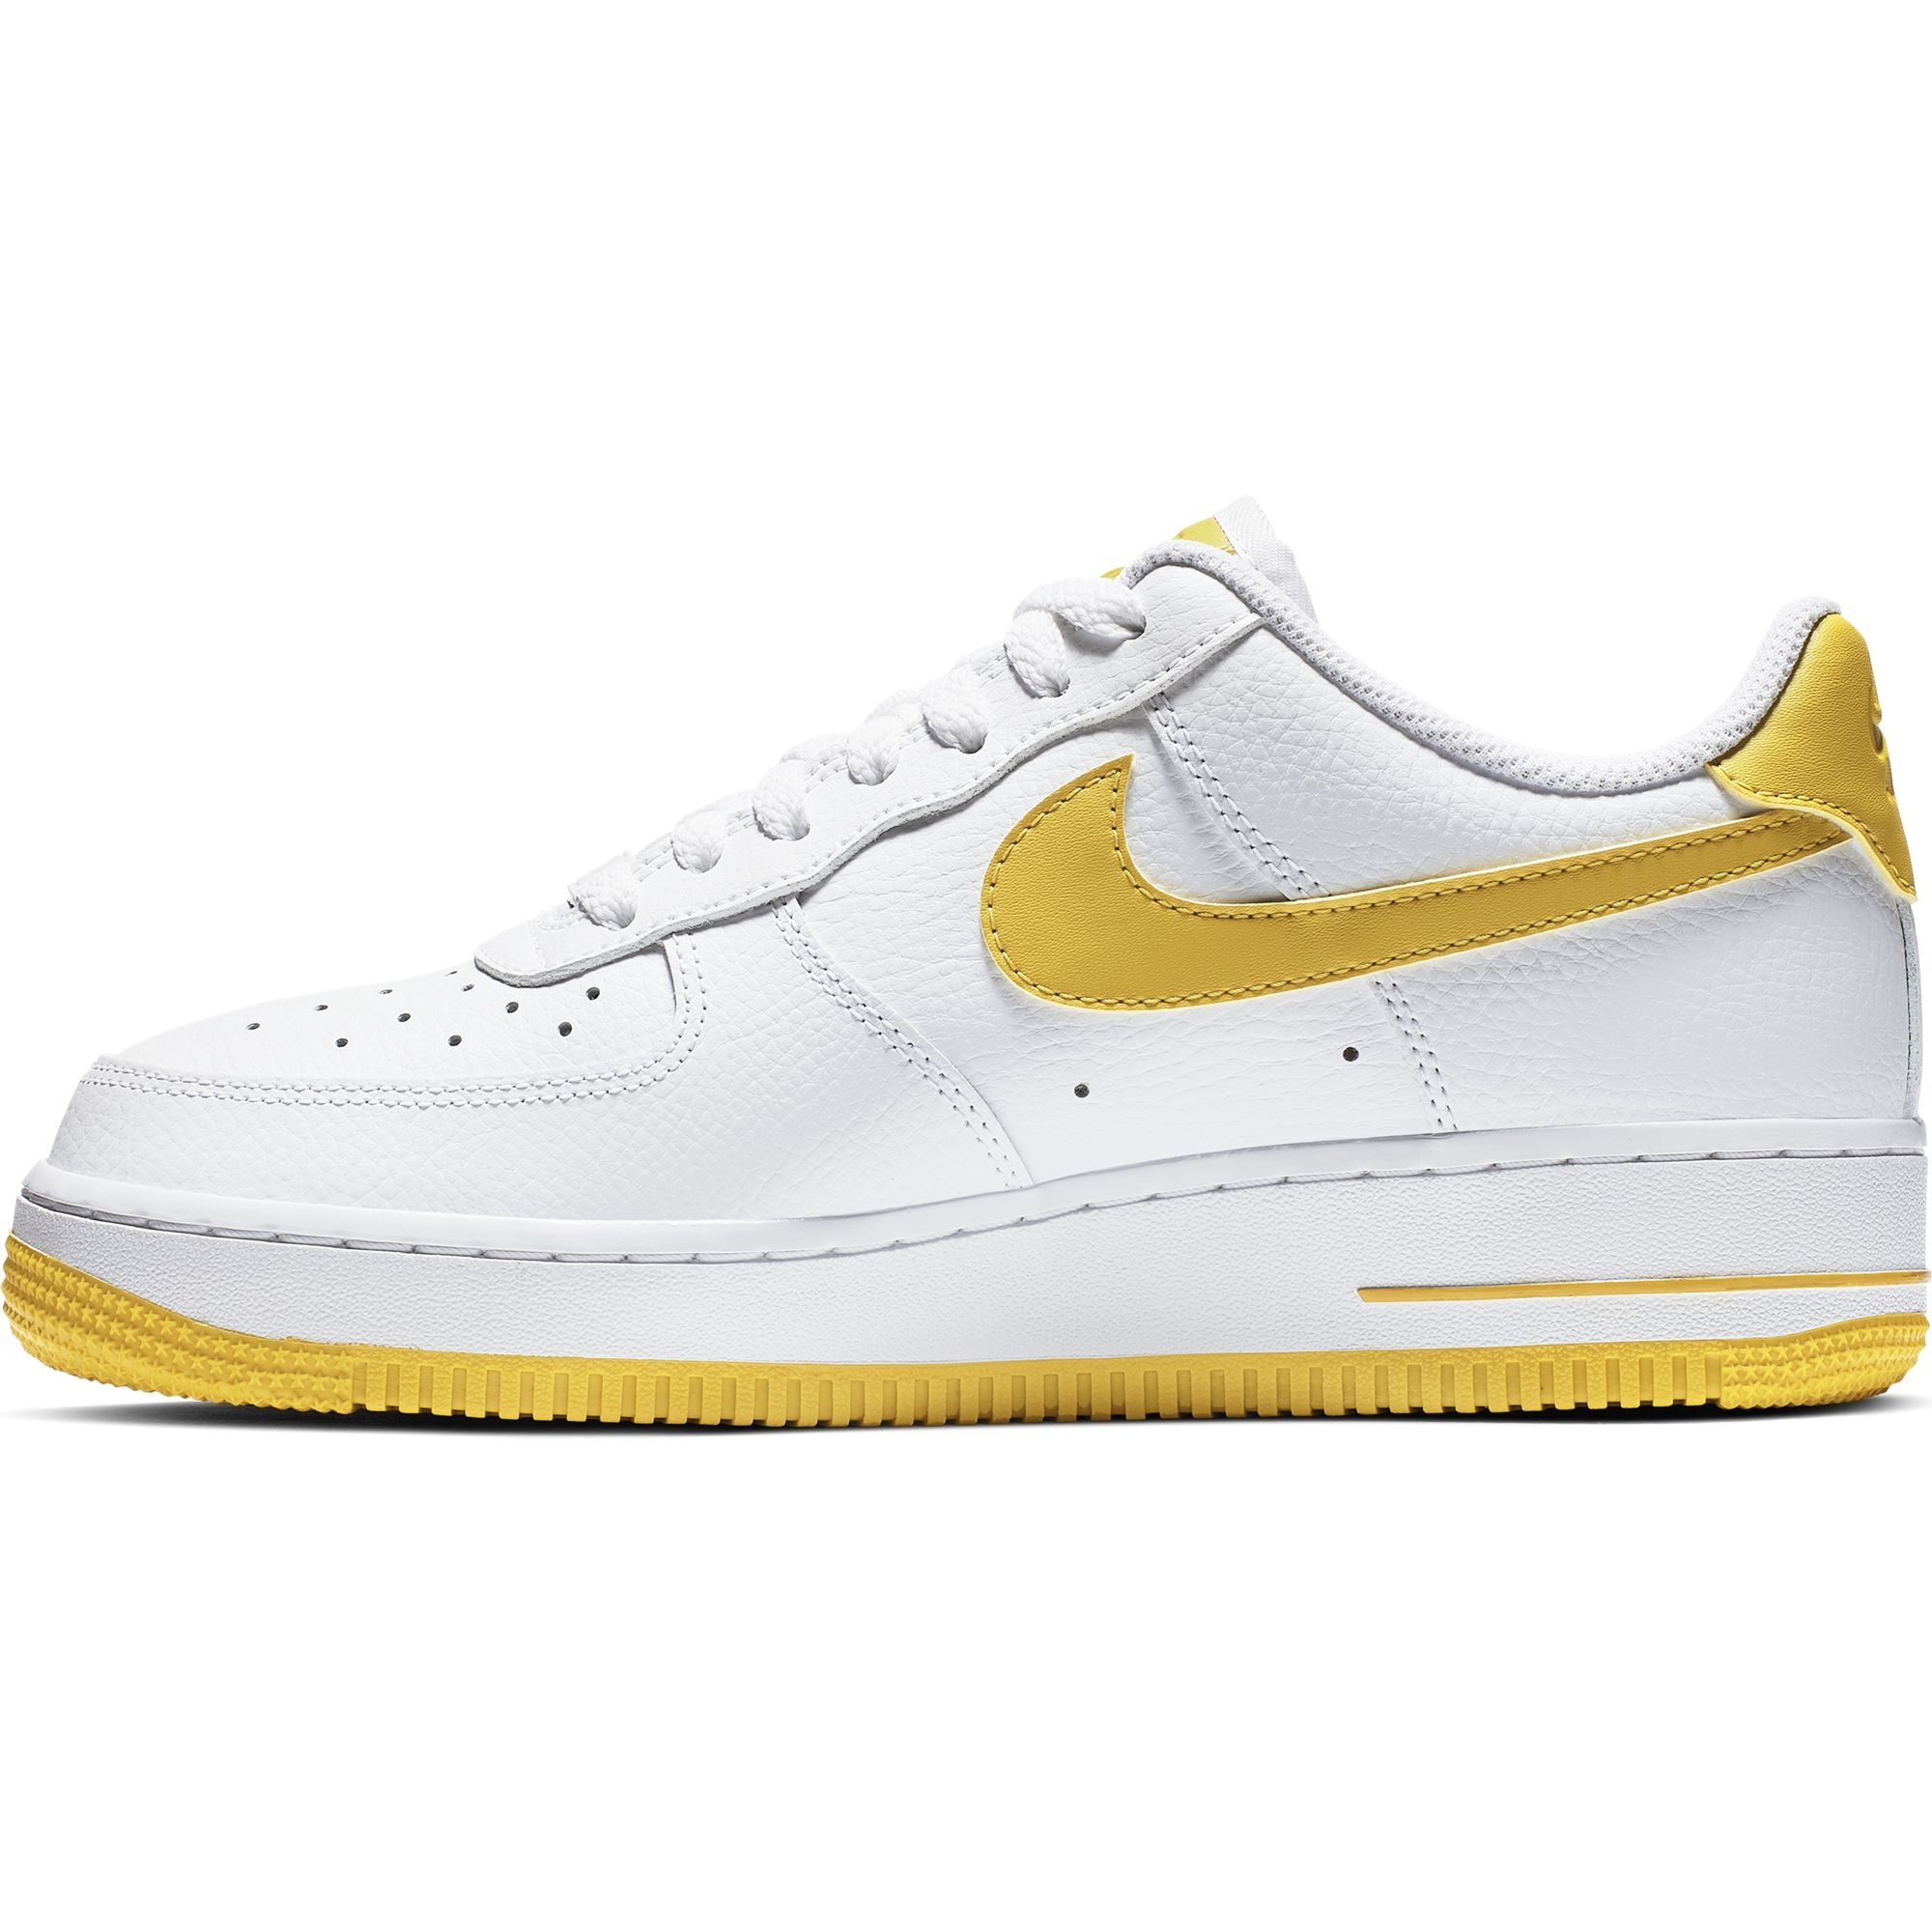 NIKE AIR FORCE 1 WOMENS WHTYELLOW | Basket Connection